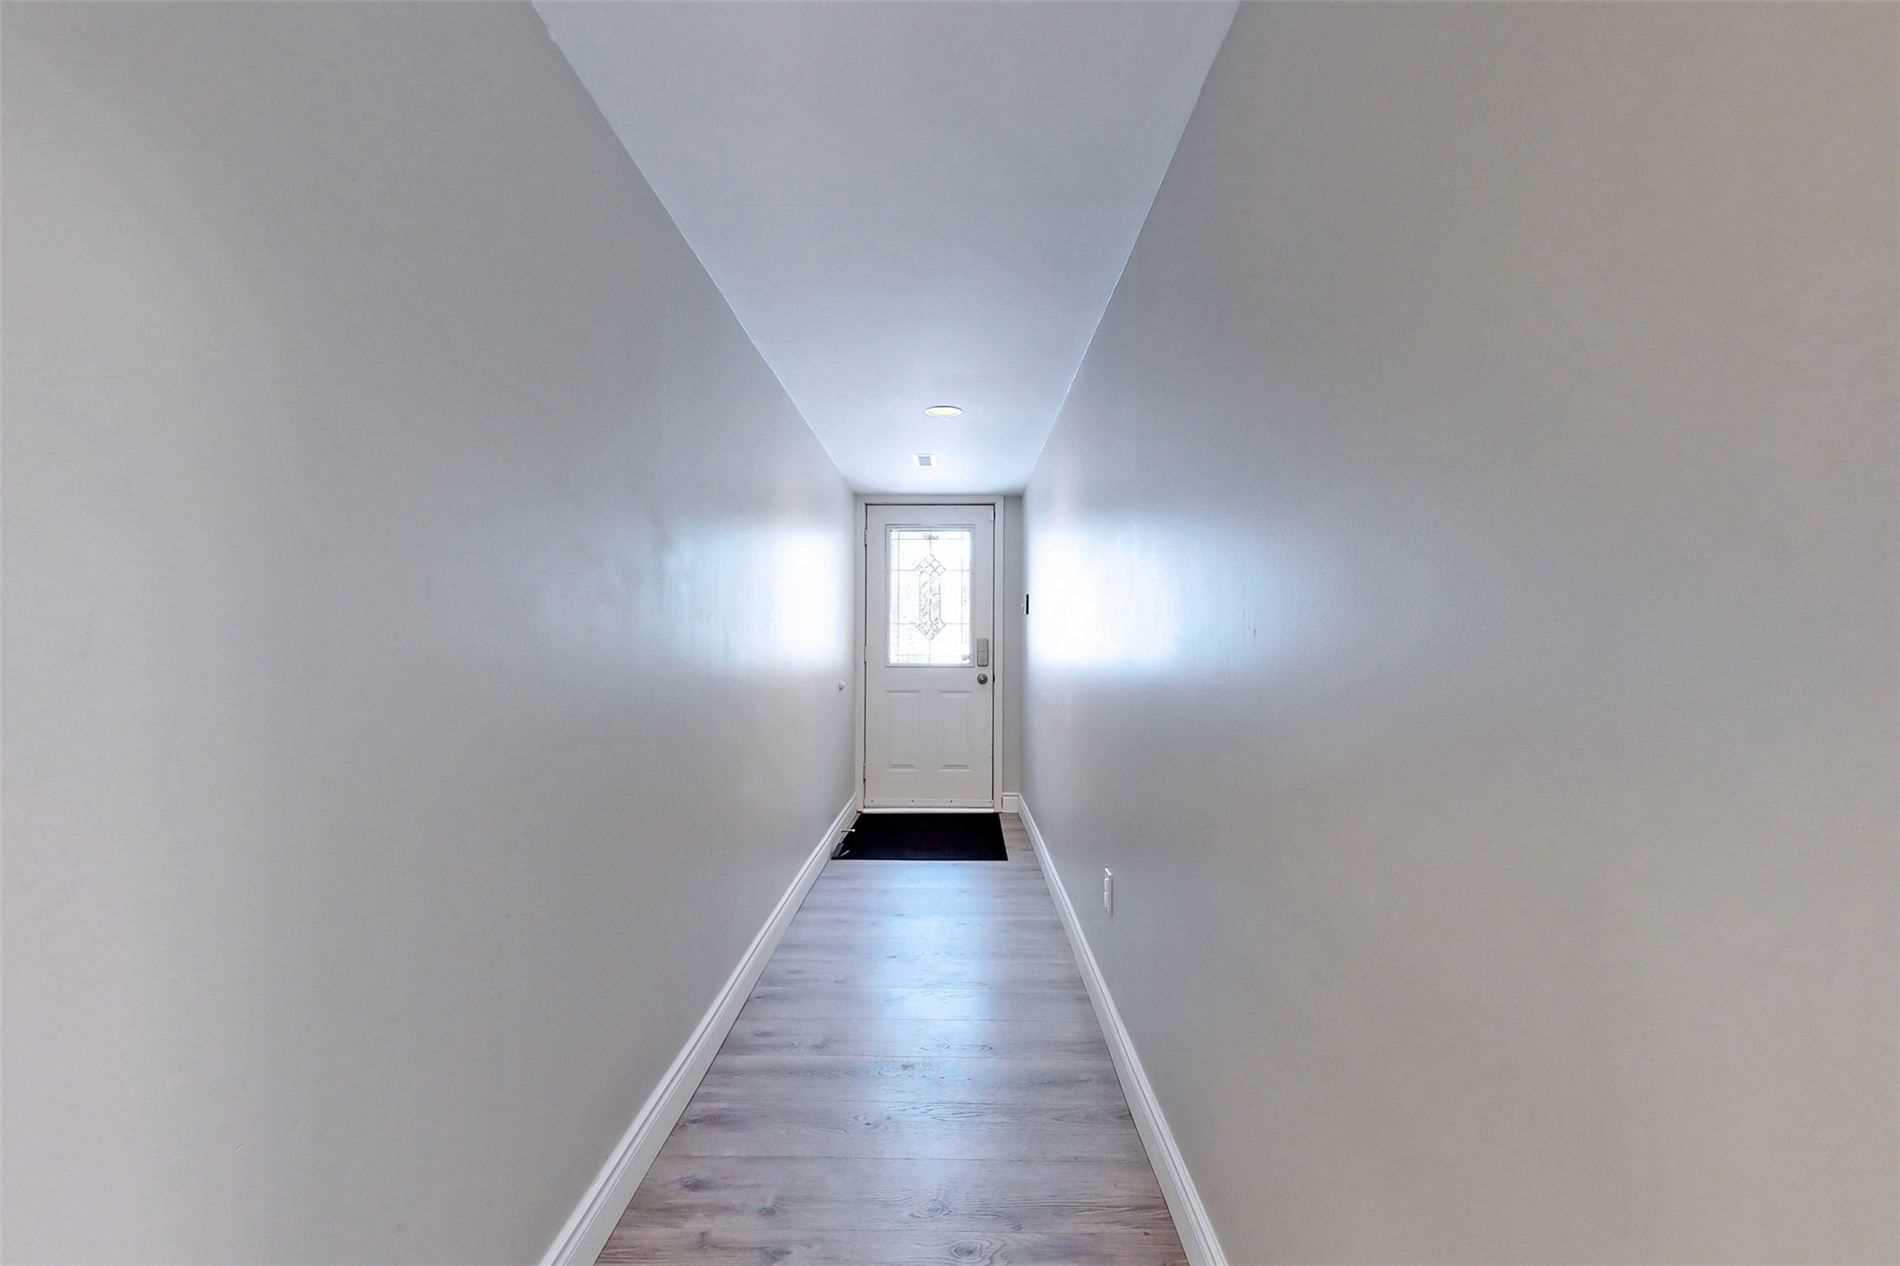 Image 23 of 40 showing inside of 3 Bedroom Condo Townhouse 3-Storey for Sale at 14 Cumberland Lane Unit# 7, Ajax L1S7K4